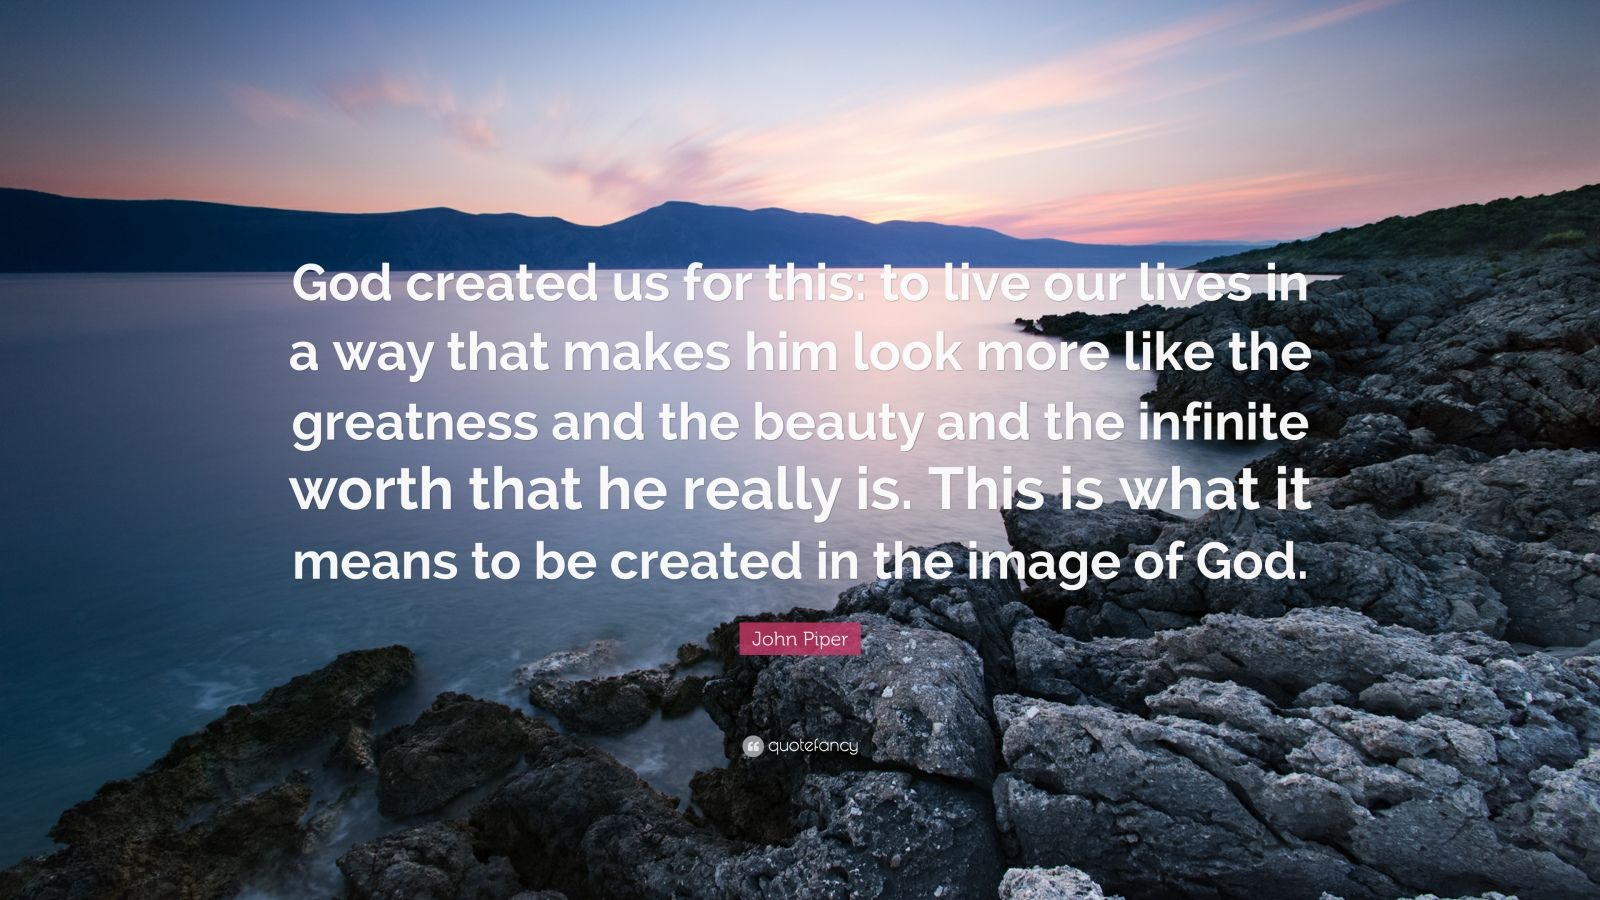 "John Piper Quote: ""God created us for this: to live our lives in a way that makes him look more like the greatness and the beauty and the infinite worth that he really is. This is what it means to be created in the image of God."""